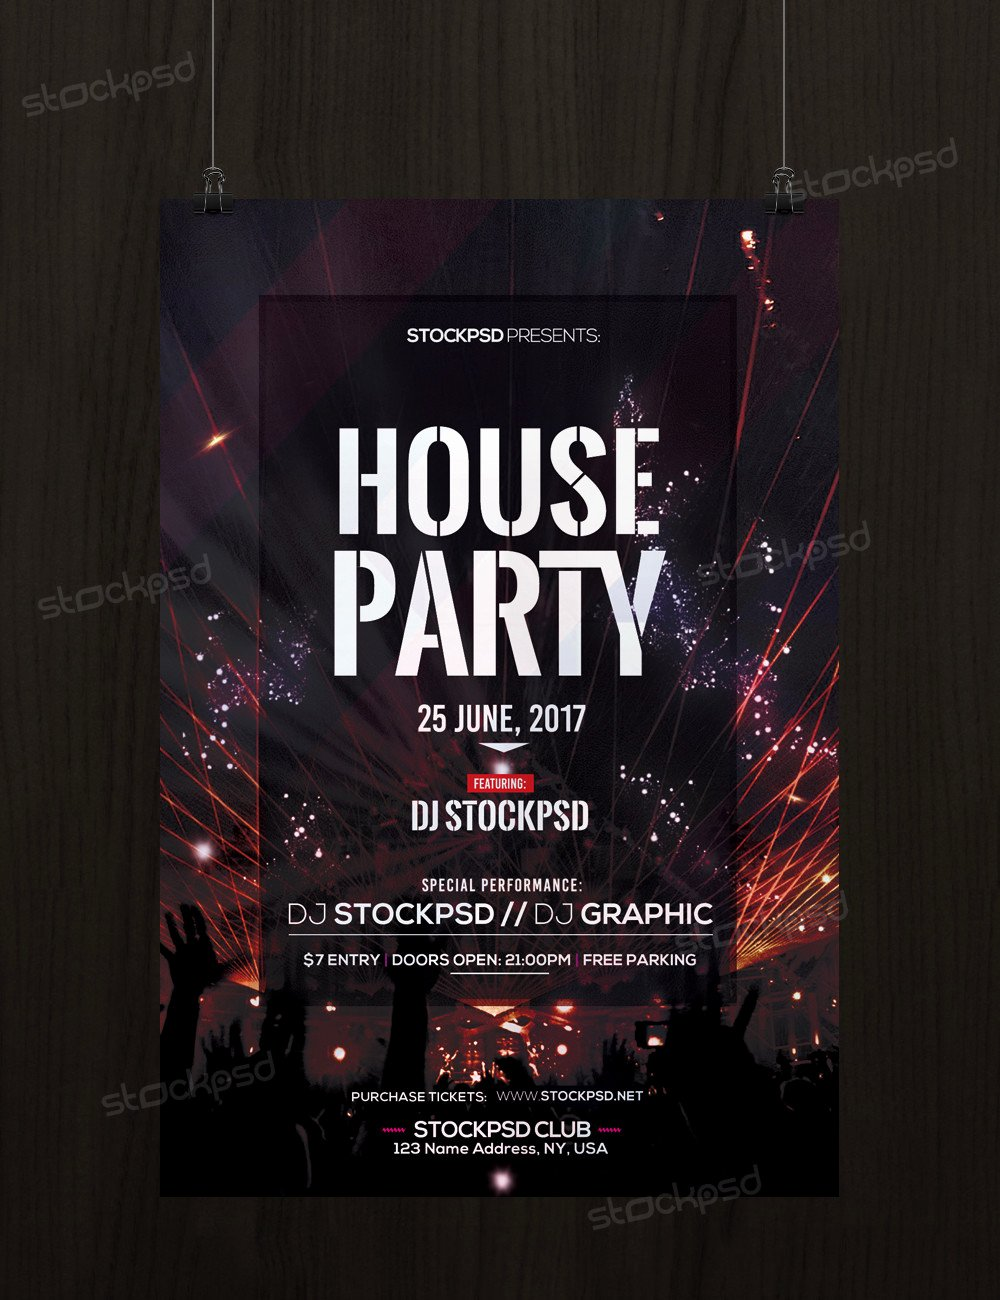 Party Flyer Template Free Unique 98 Premium & Free Flyer Templates Psd Absolutely Free to